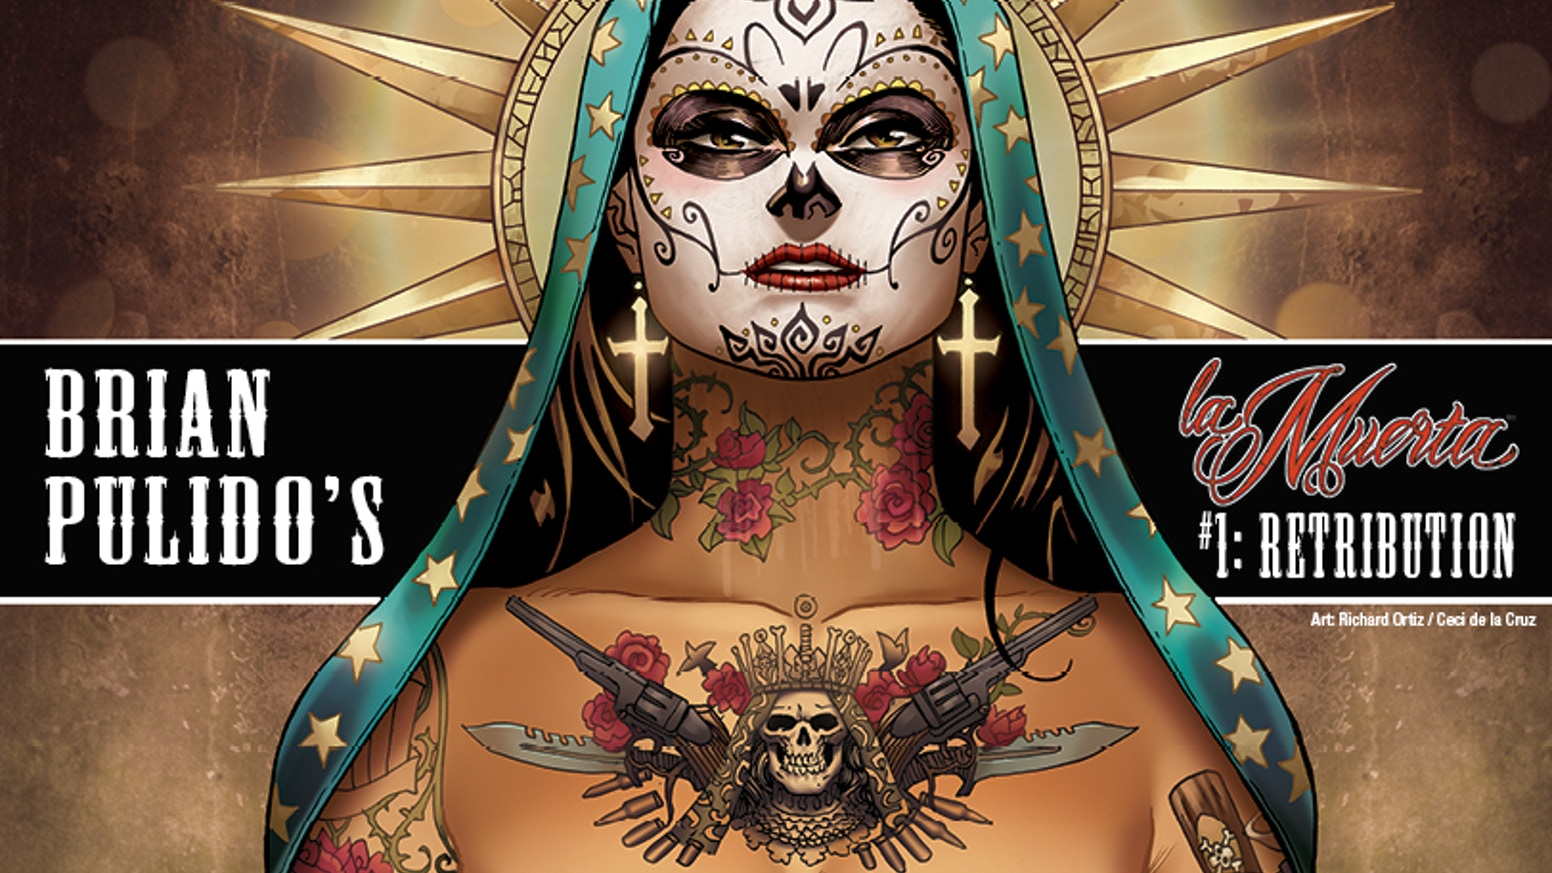 THANK YOU for bringing Maria's story to life! Thanks to you -Maria Diaz aka La Muerta is back to exact retribution on the criminal underworld!